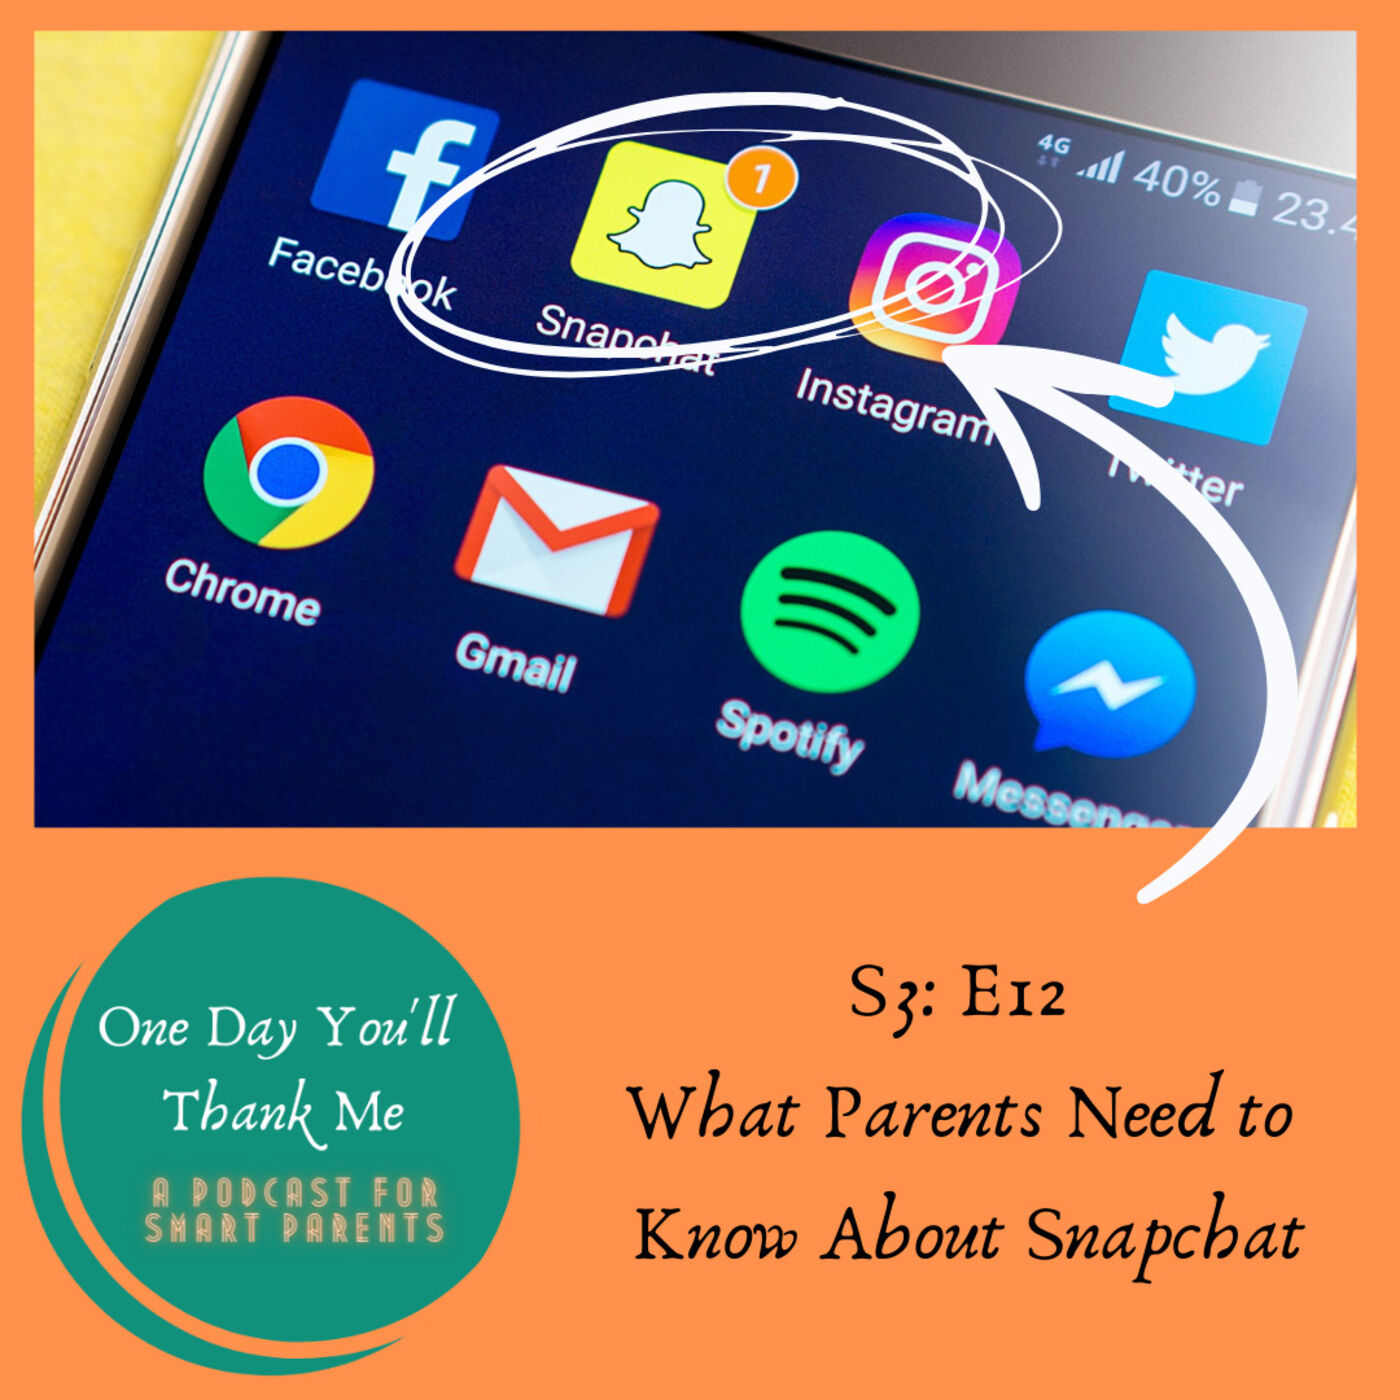 S3: E12 - What Parents Need to Know About Snapchat